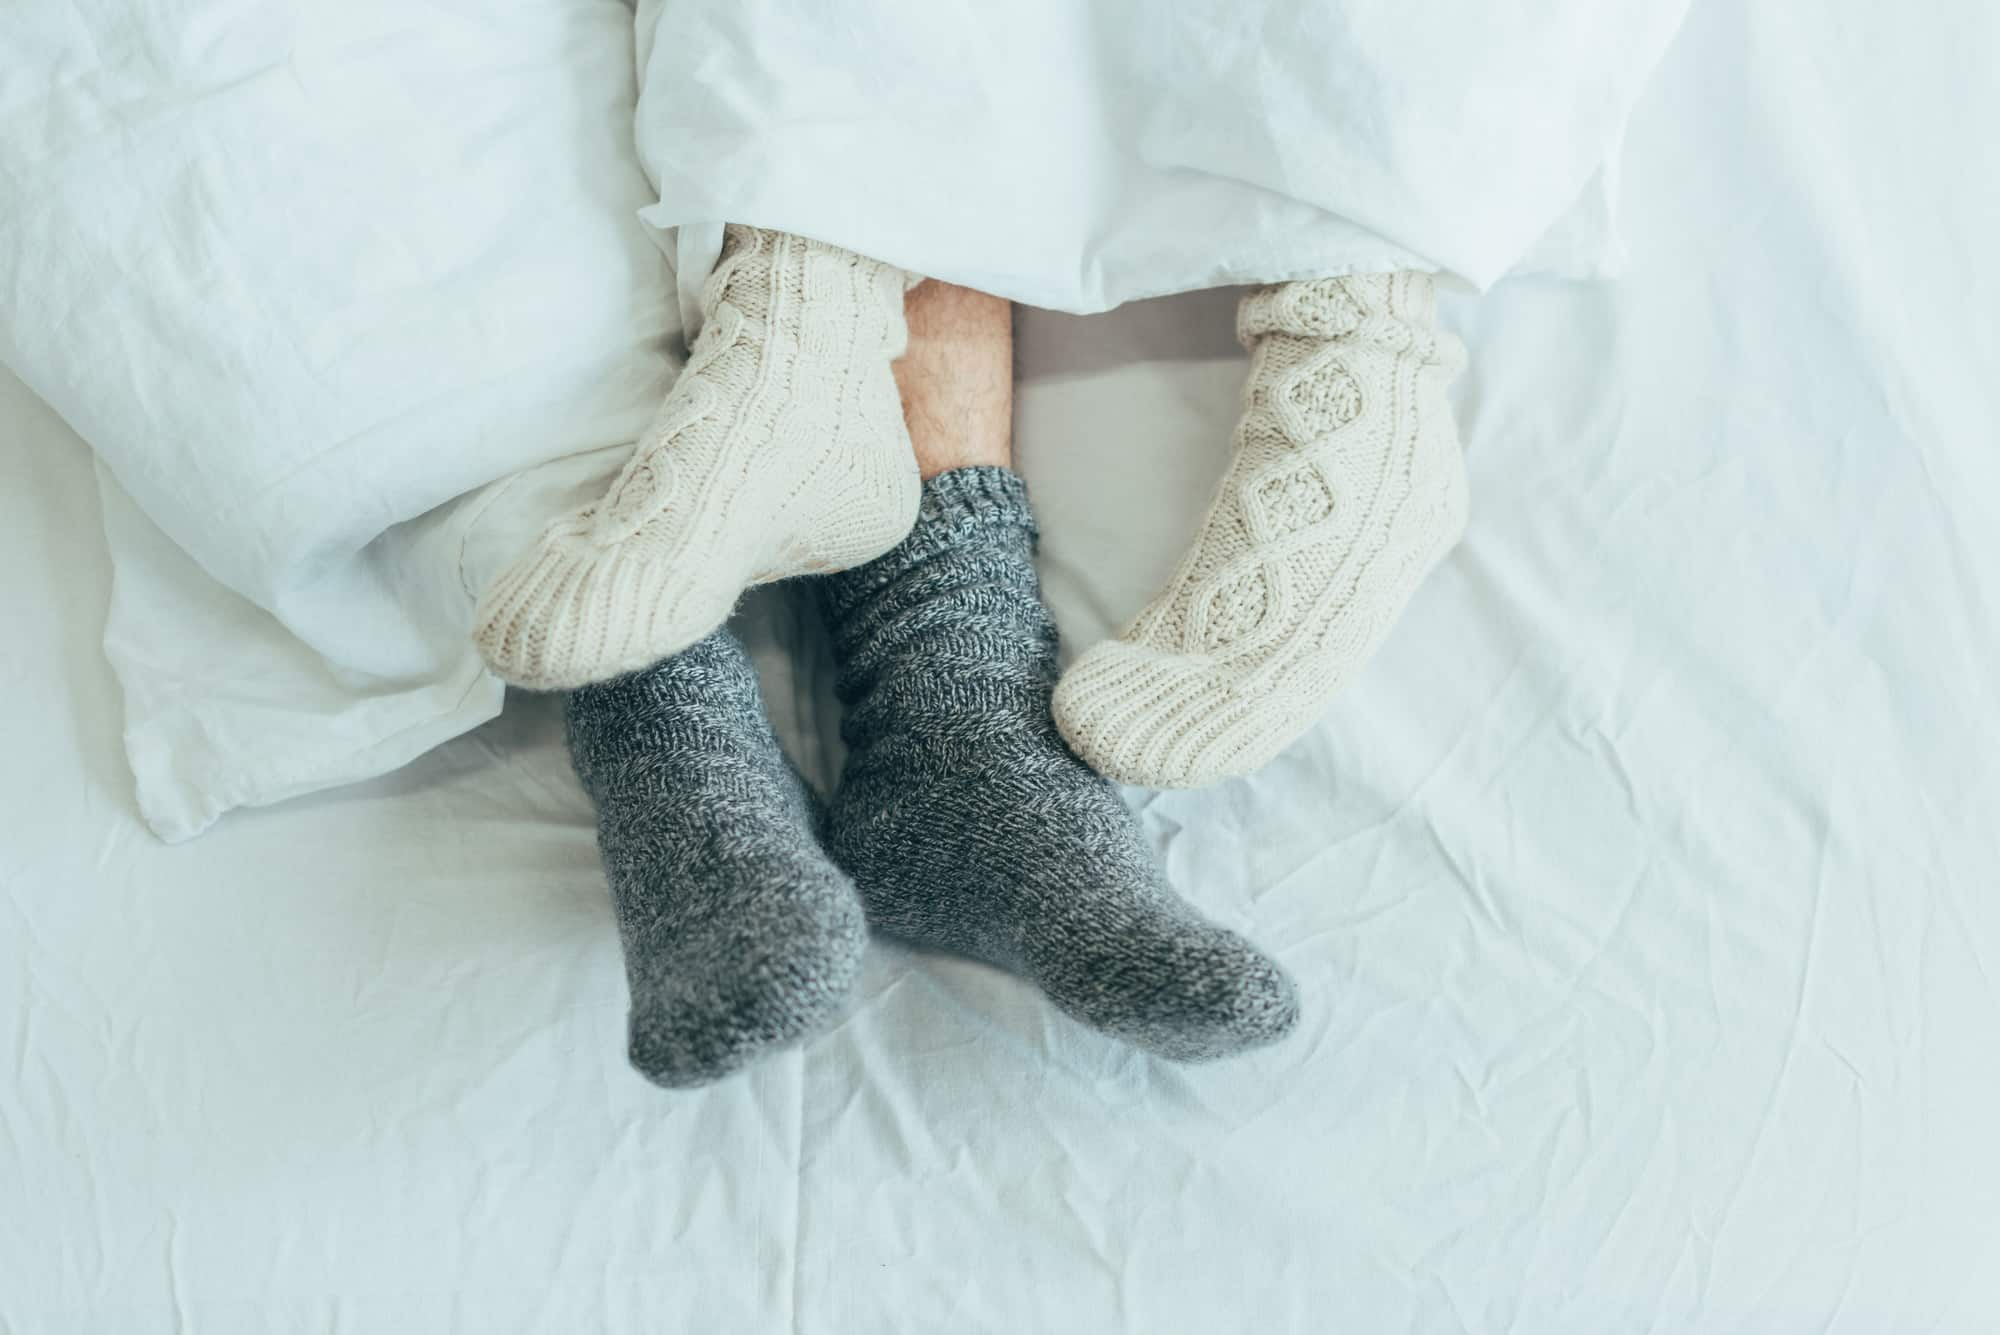 Wearing socks to bed